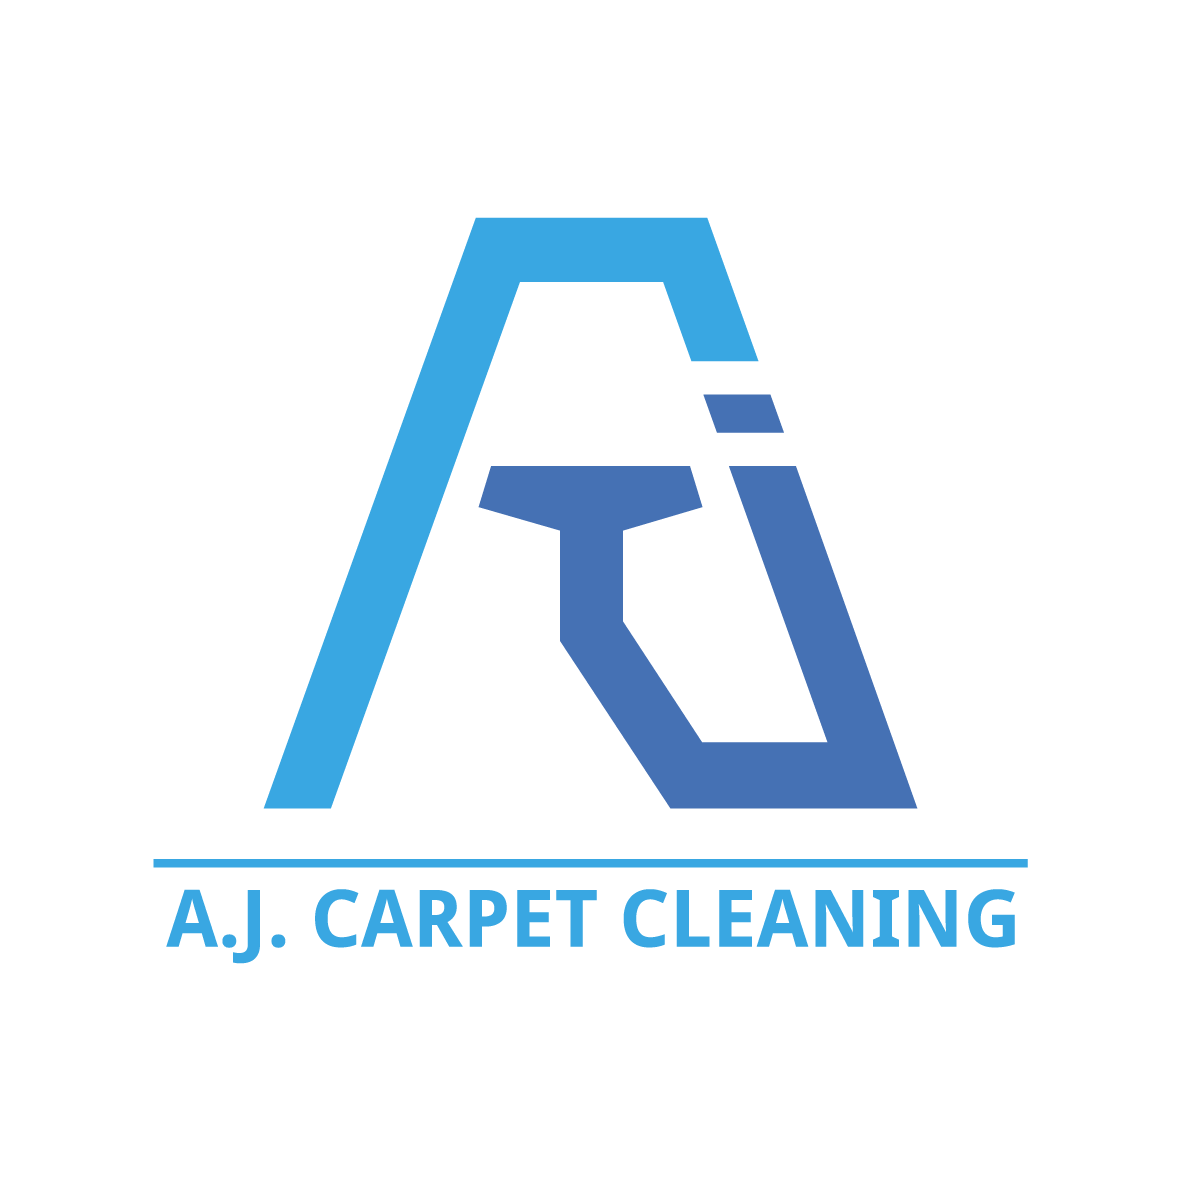 a j carpet cleaning logo on behance